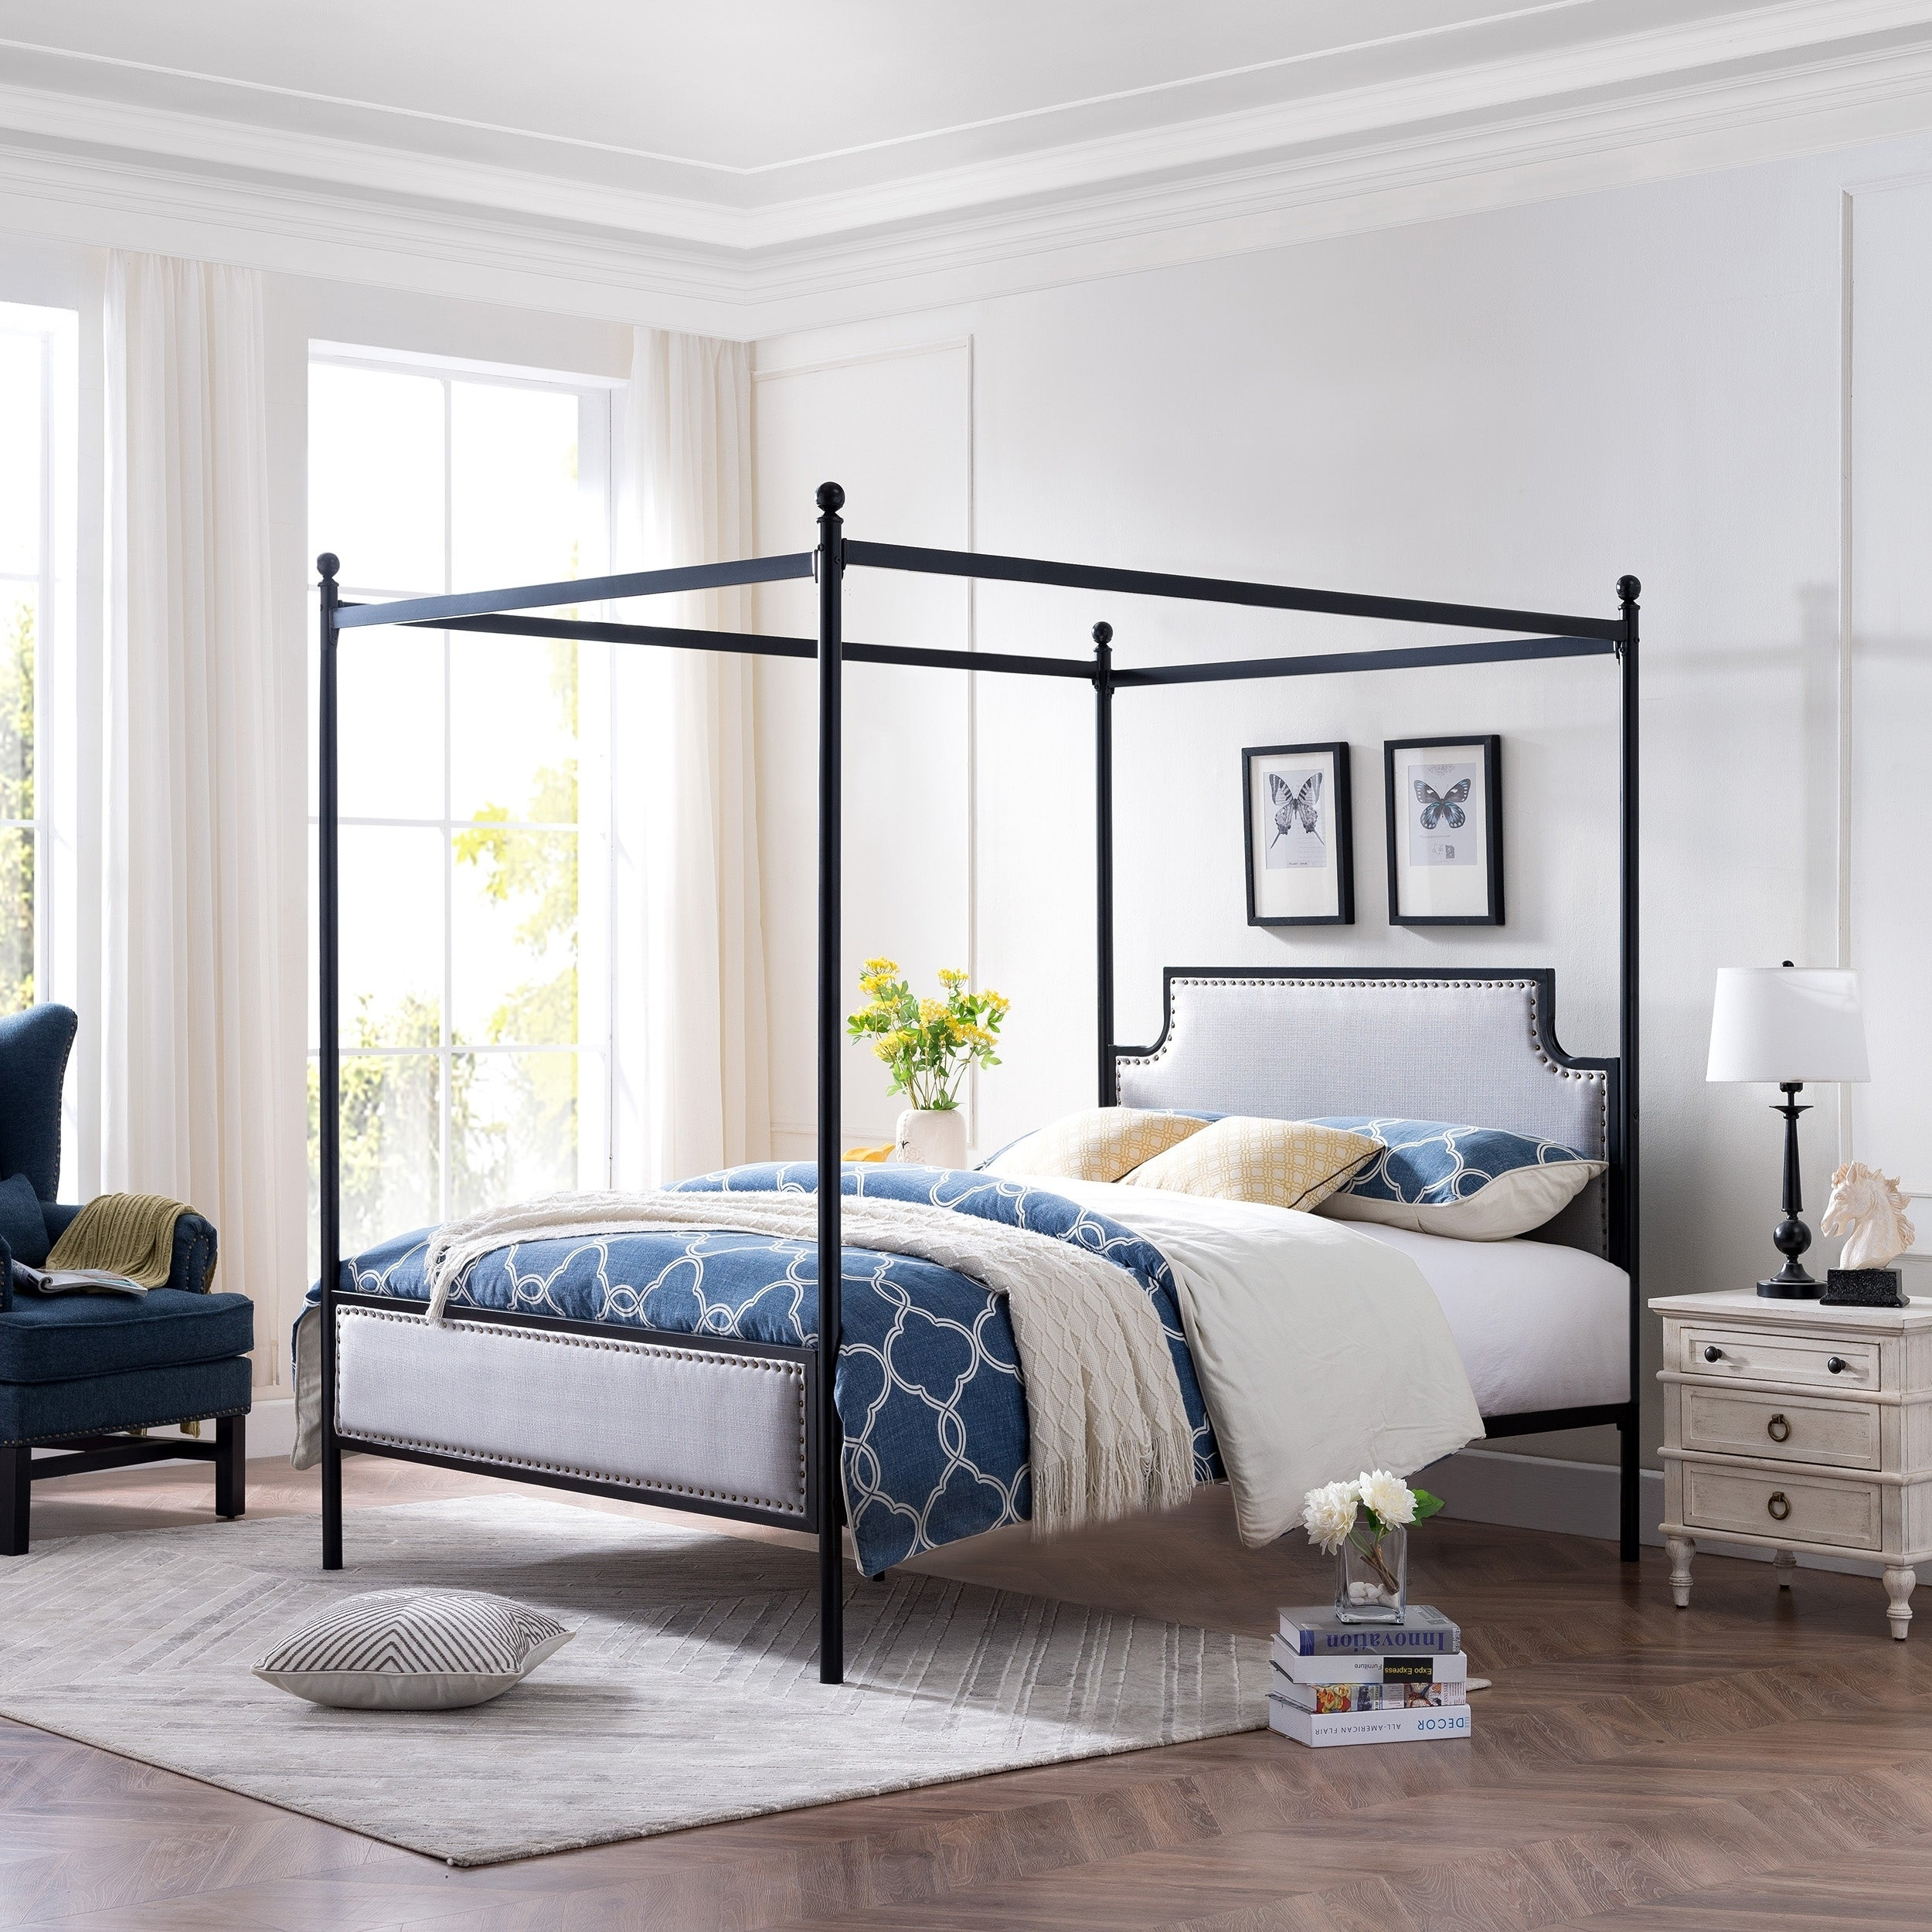 Shop Black Friday Deals On Beechmont Queen Size Canopy Bed Frame With Upholstered Studded Headboard By Christopher Knight Home On Sale Overstock 27414185